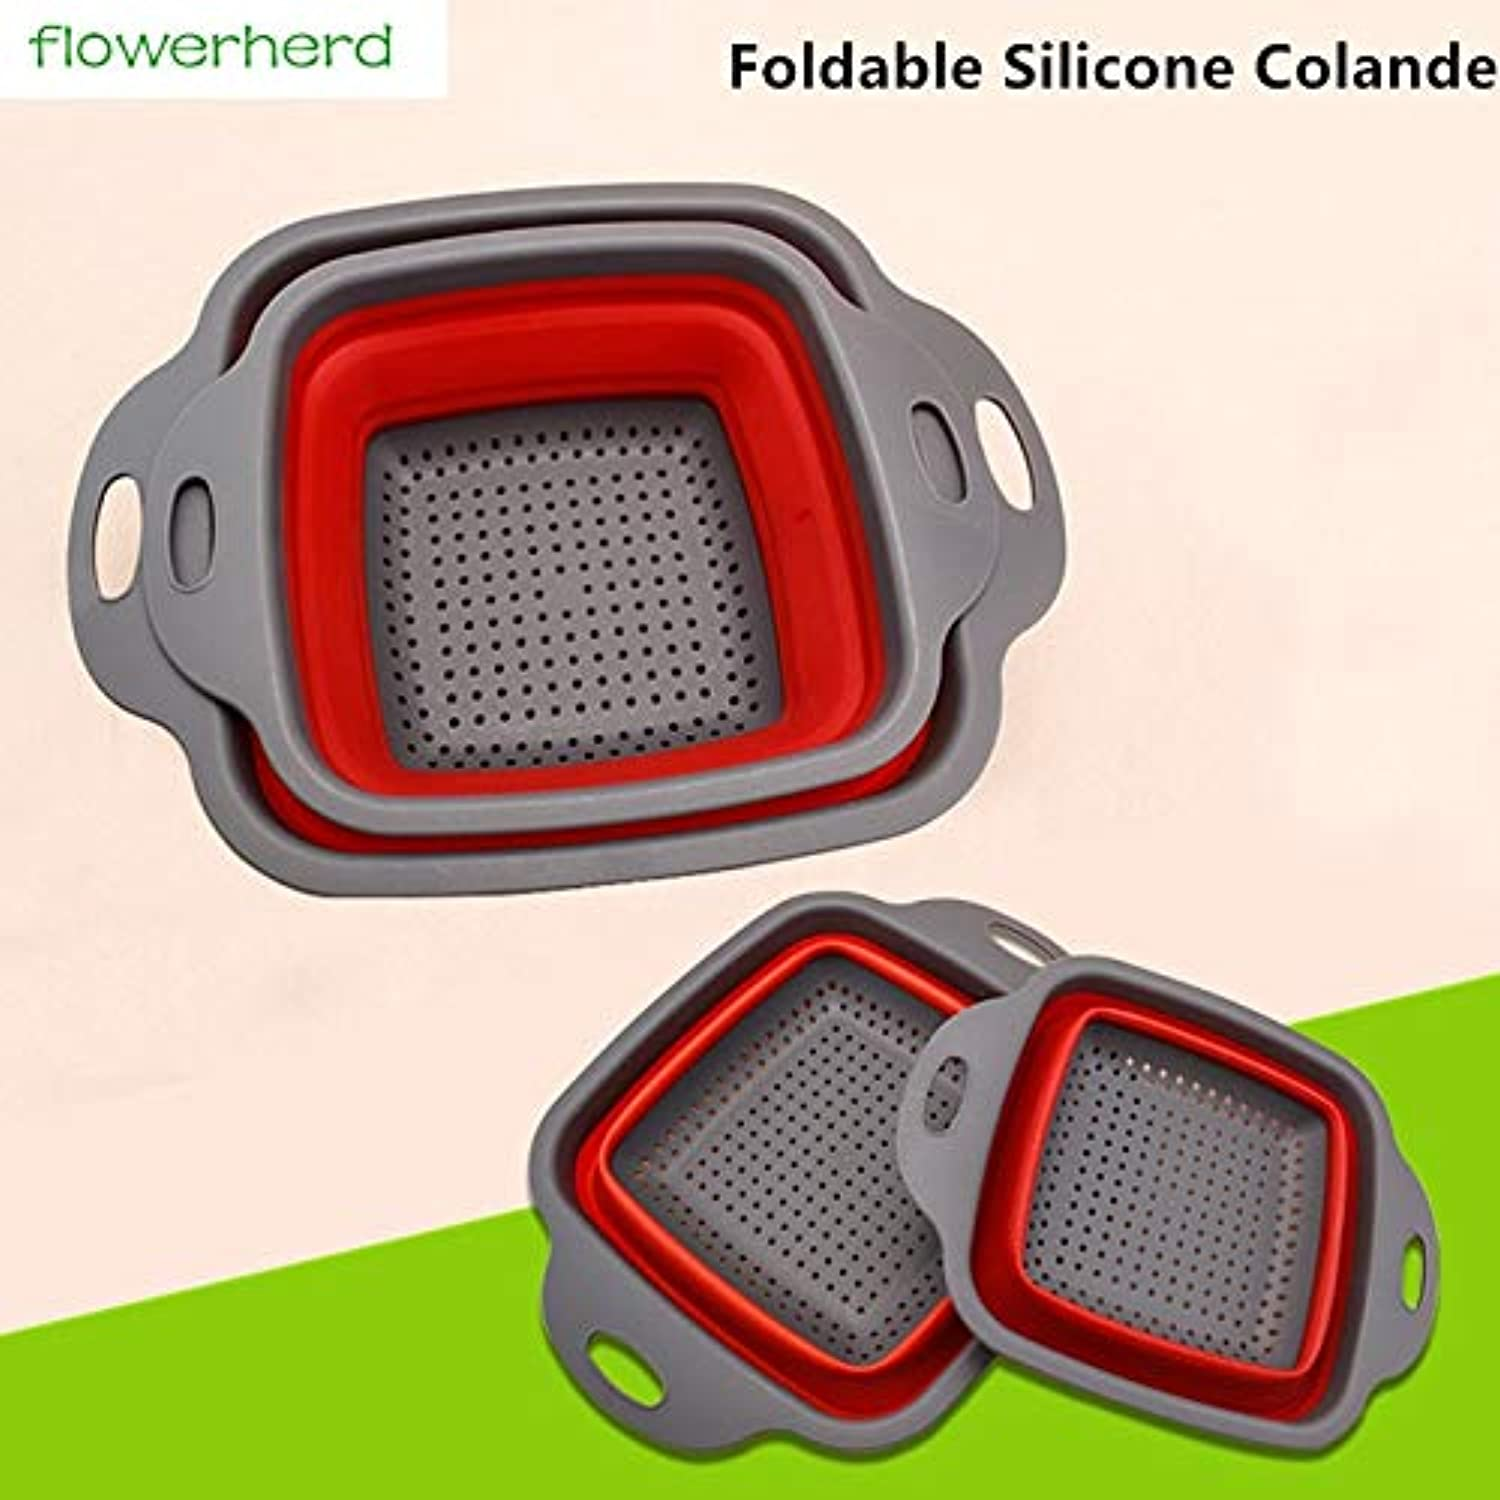 Farmerly 2pcs Set Foldable Fruit Vegetable Washing Basket Strainer Portabl Silicone Colander Collapsible Drainer with Handle Kitchen Tool